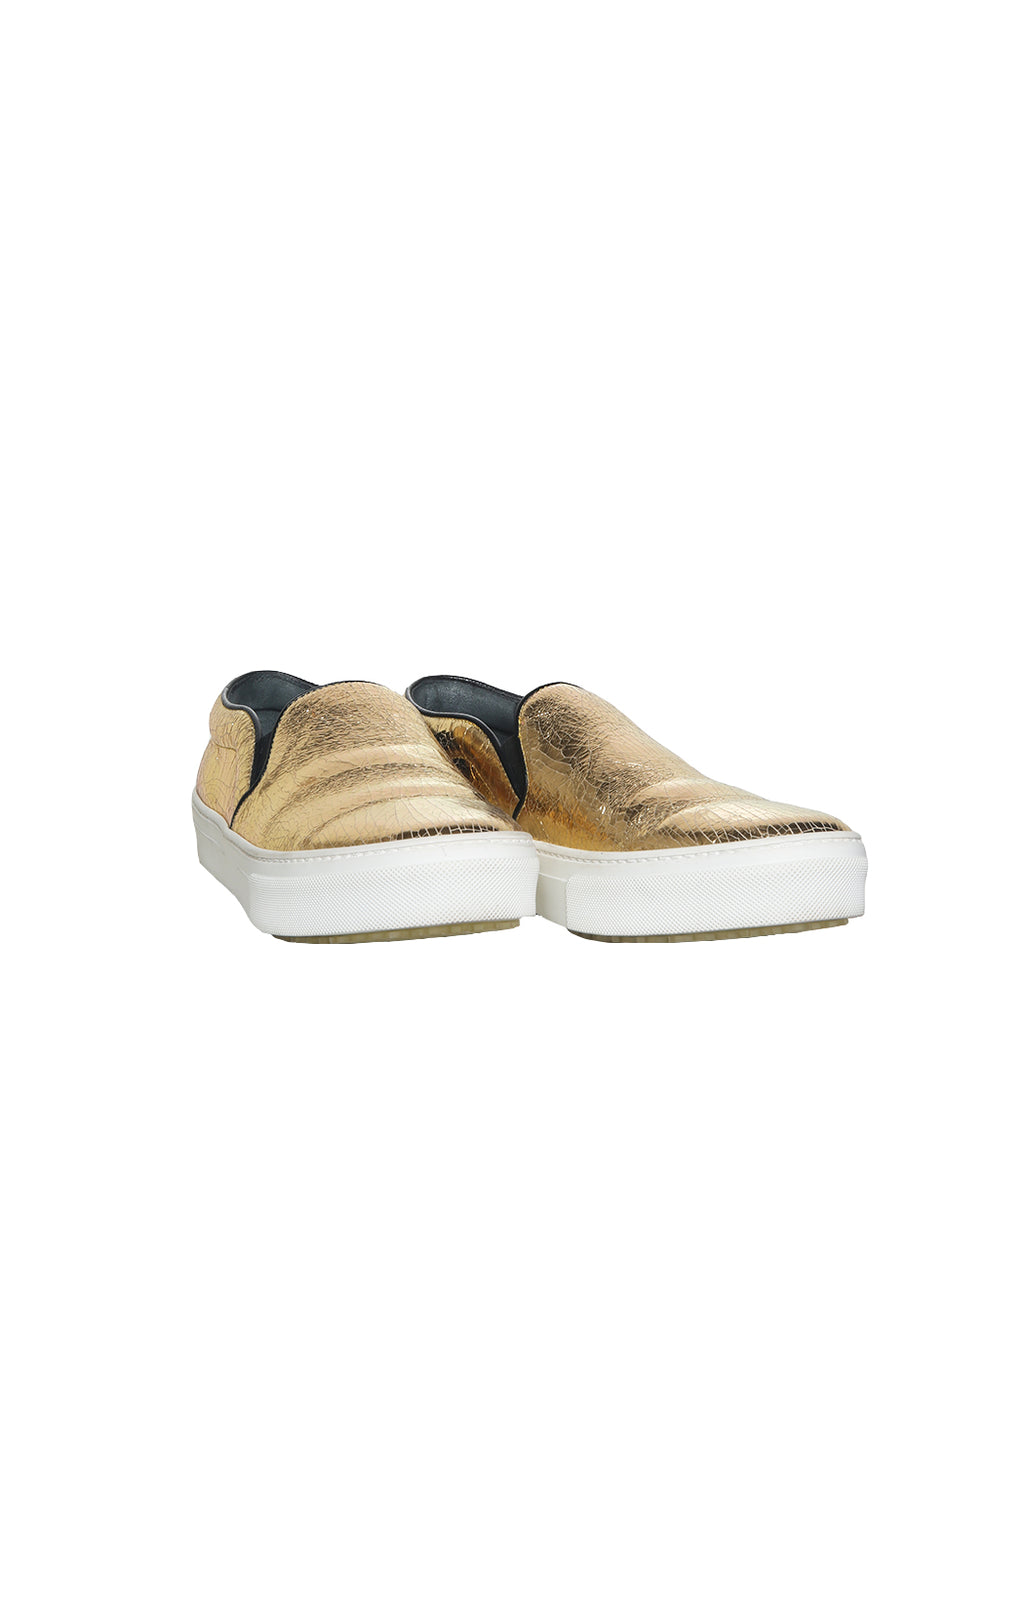 Front view of CELINE Gold Slip On Tennis Shoe Size: 38 (US 8)